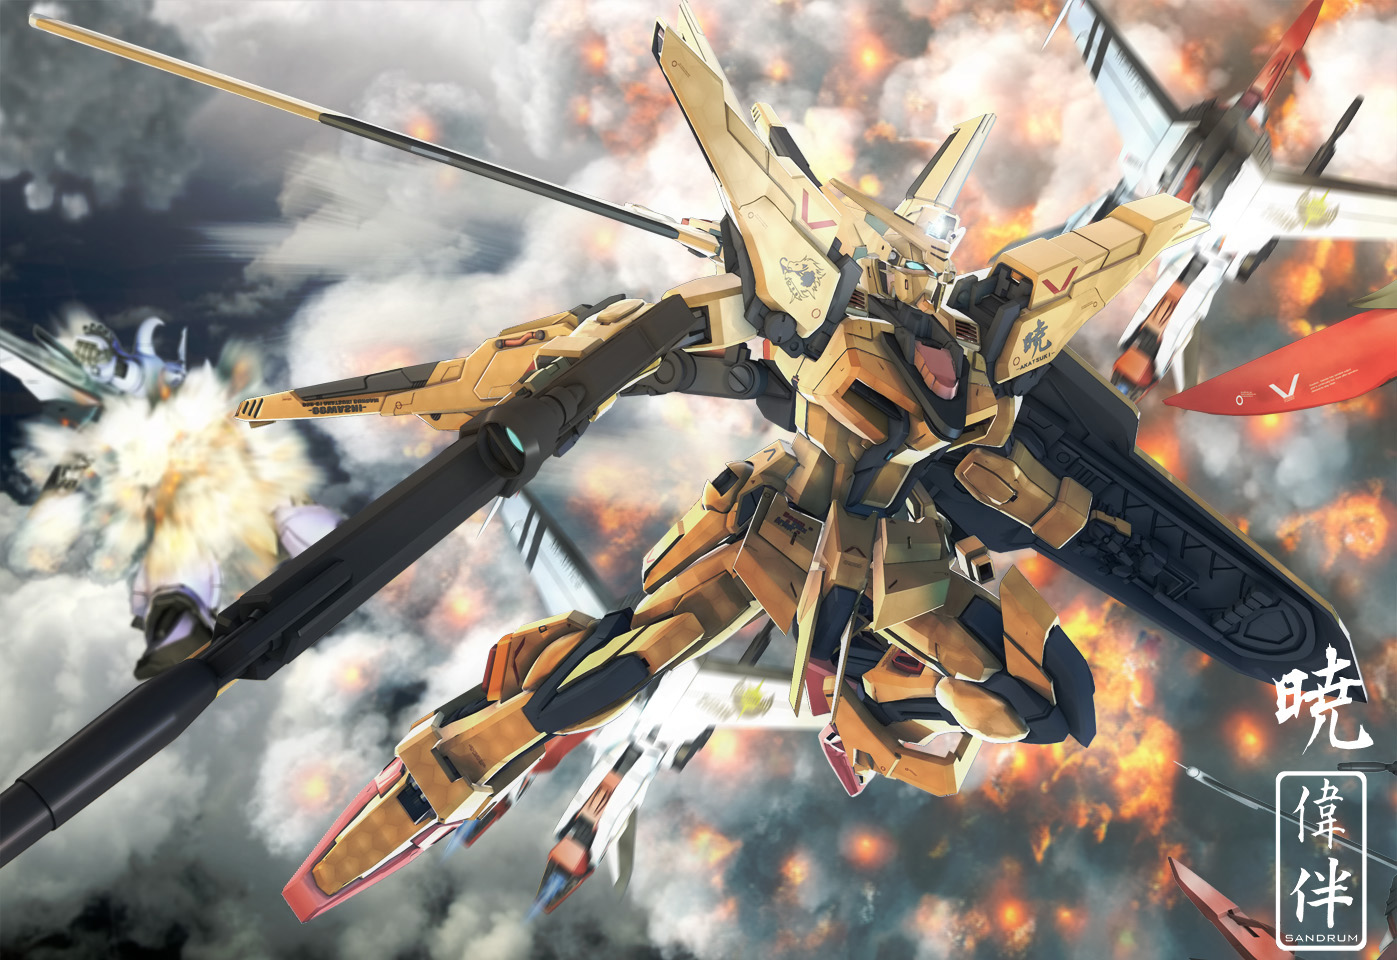 Another 10 Gundam Inspired Wallpapers by deviantArt Artists Gundam 1397x960